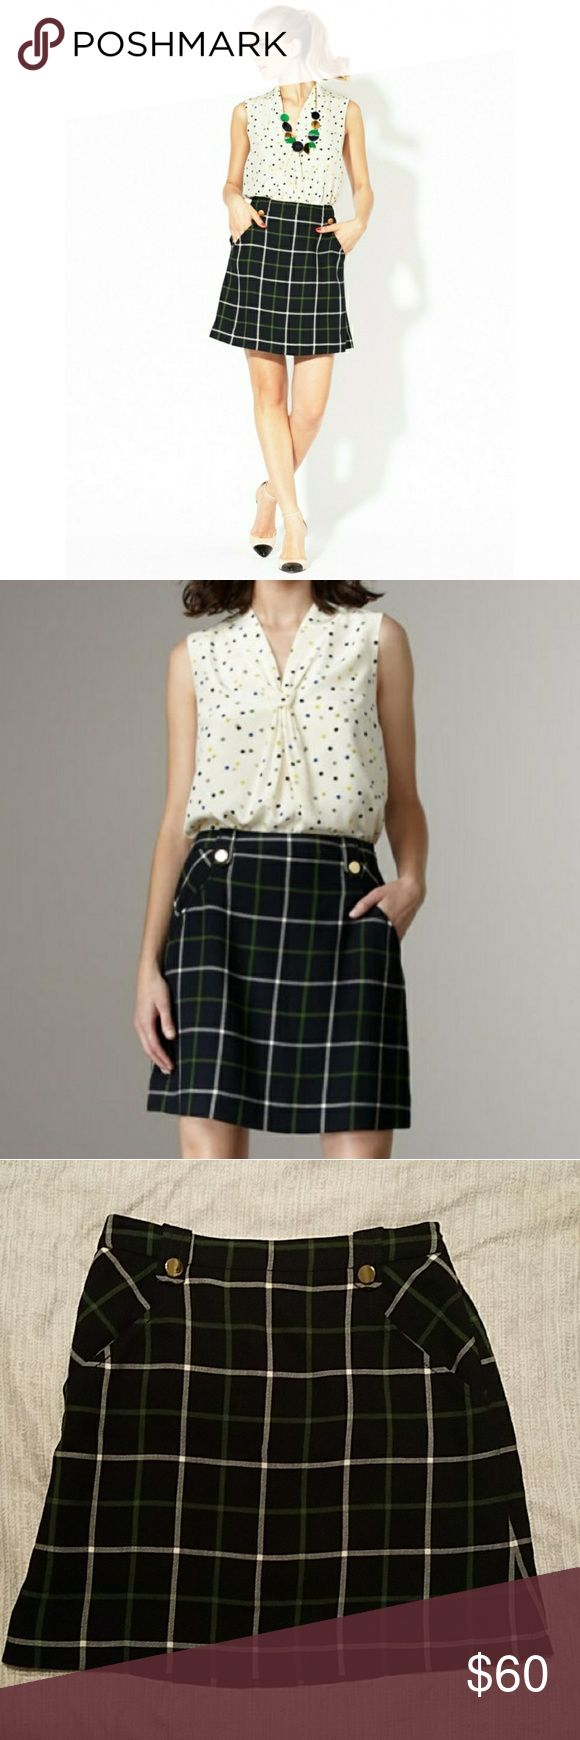 Kate Spade Plaid Fallon Skirt EUC Kate Spade skirt the rules skirt WITH POCKETS! yes, dreams do come true lol   The skirt is navy blue with green and white stripes and gold buttons. It has a hidden zipper on the side and sits at your natural waist   Feel free to ask any questions or make offers kate spade Skirts